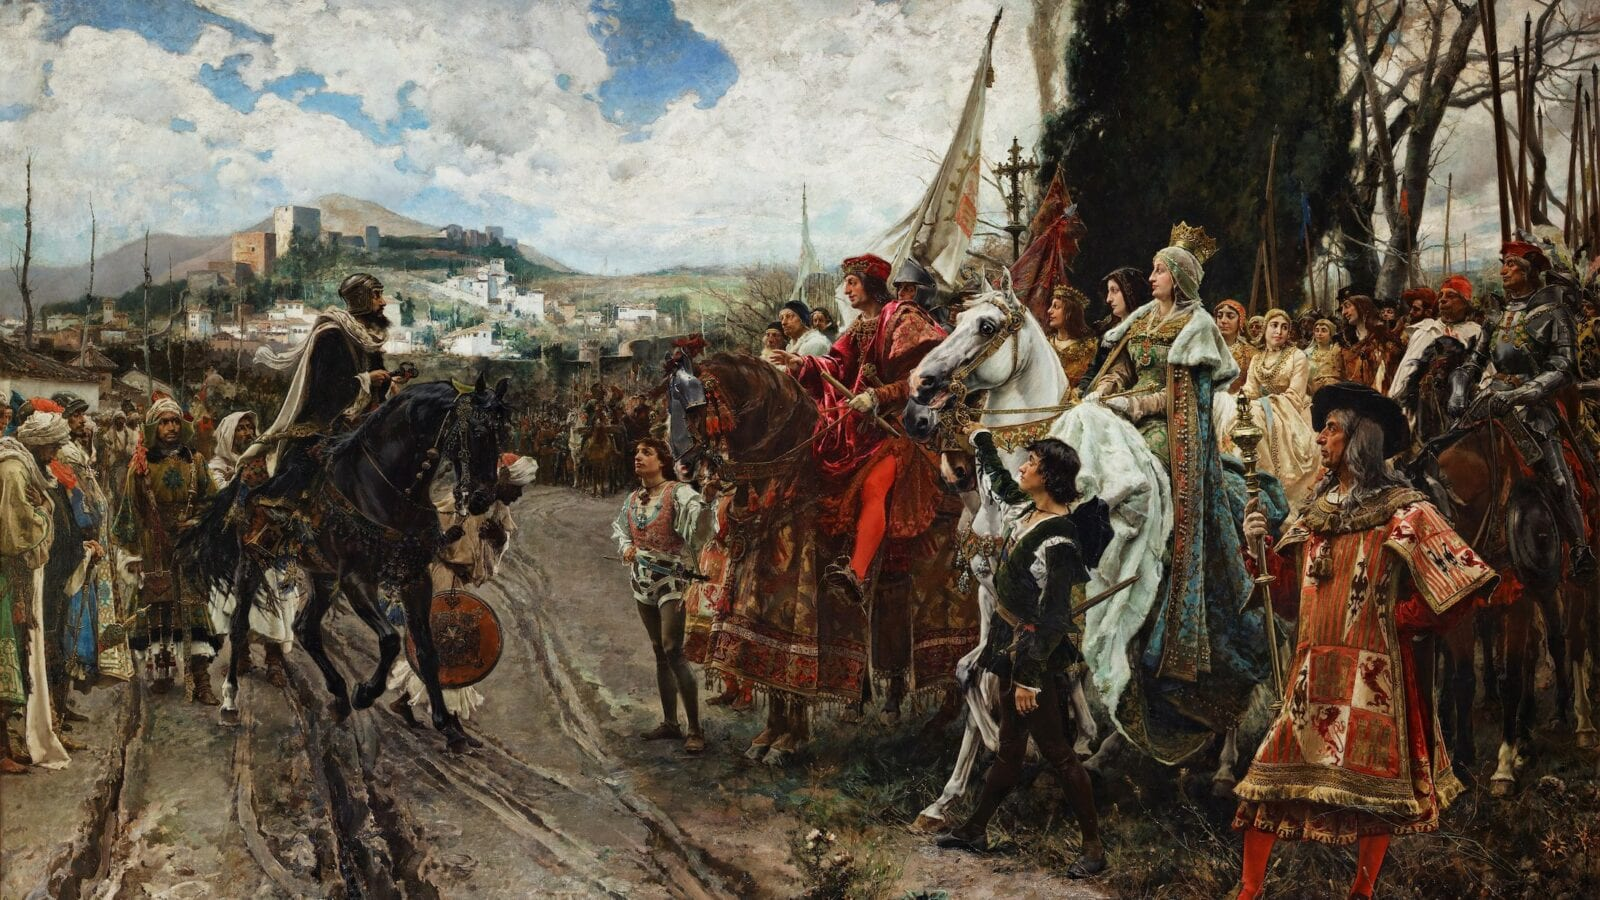 La Rendición de Granada (1882) - Surrender of Granada by Francisco Pradilla Ortiz